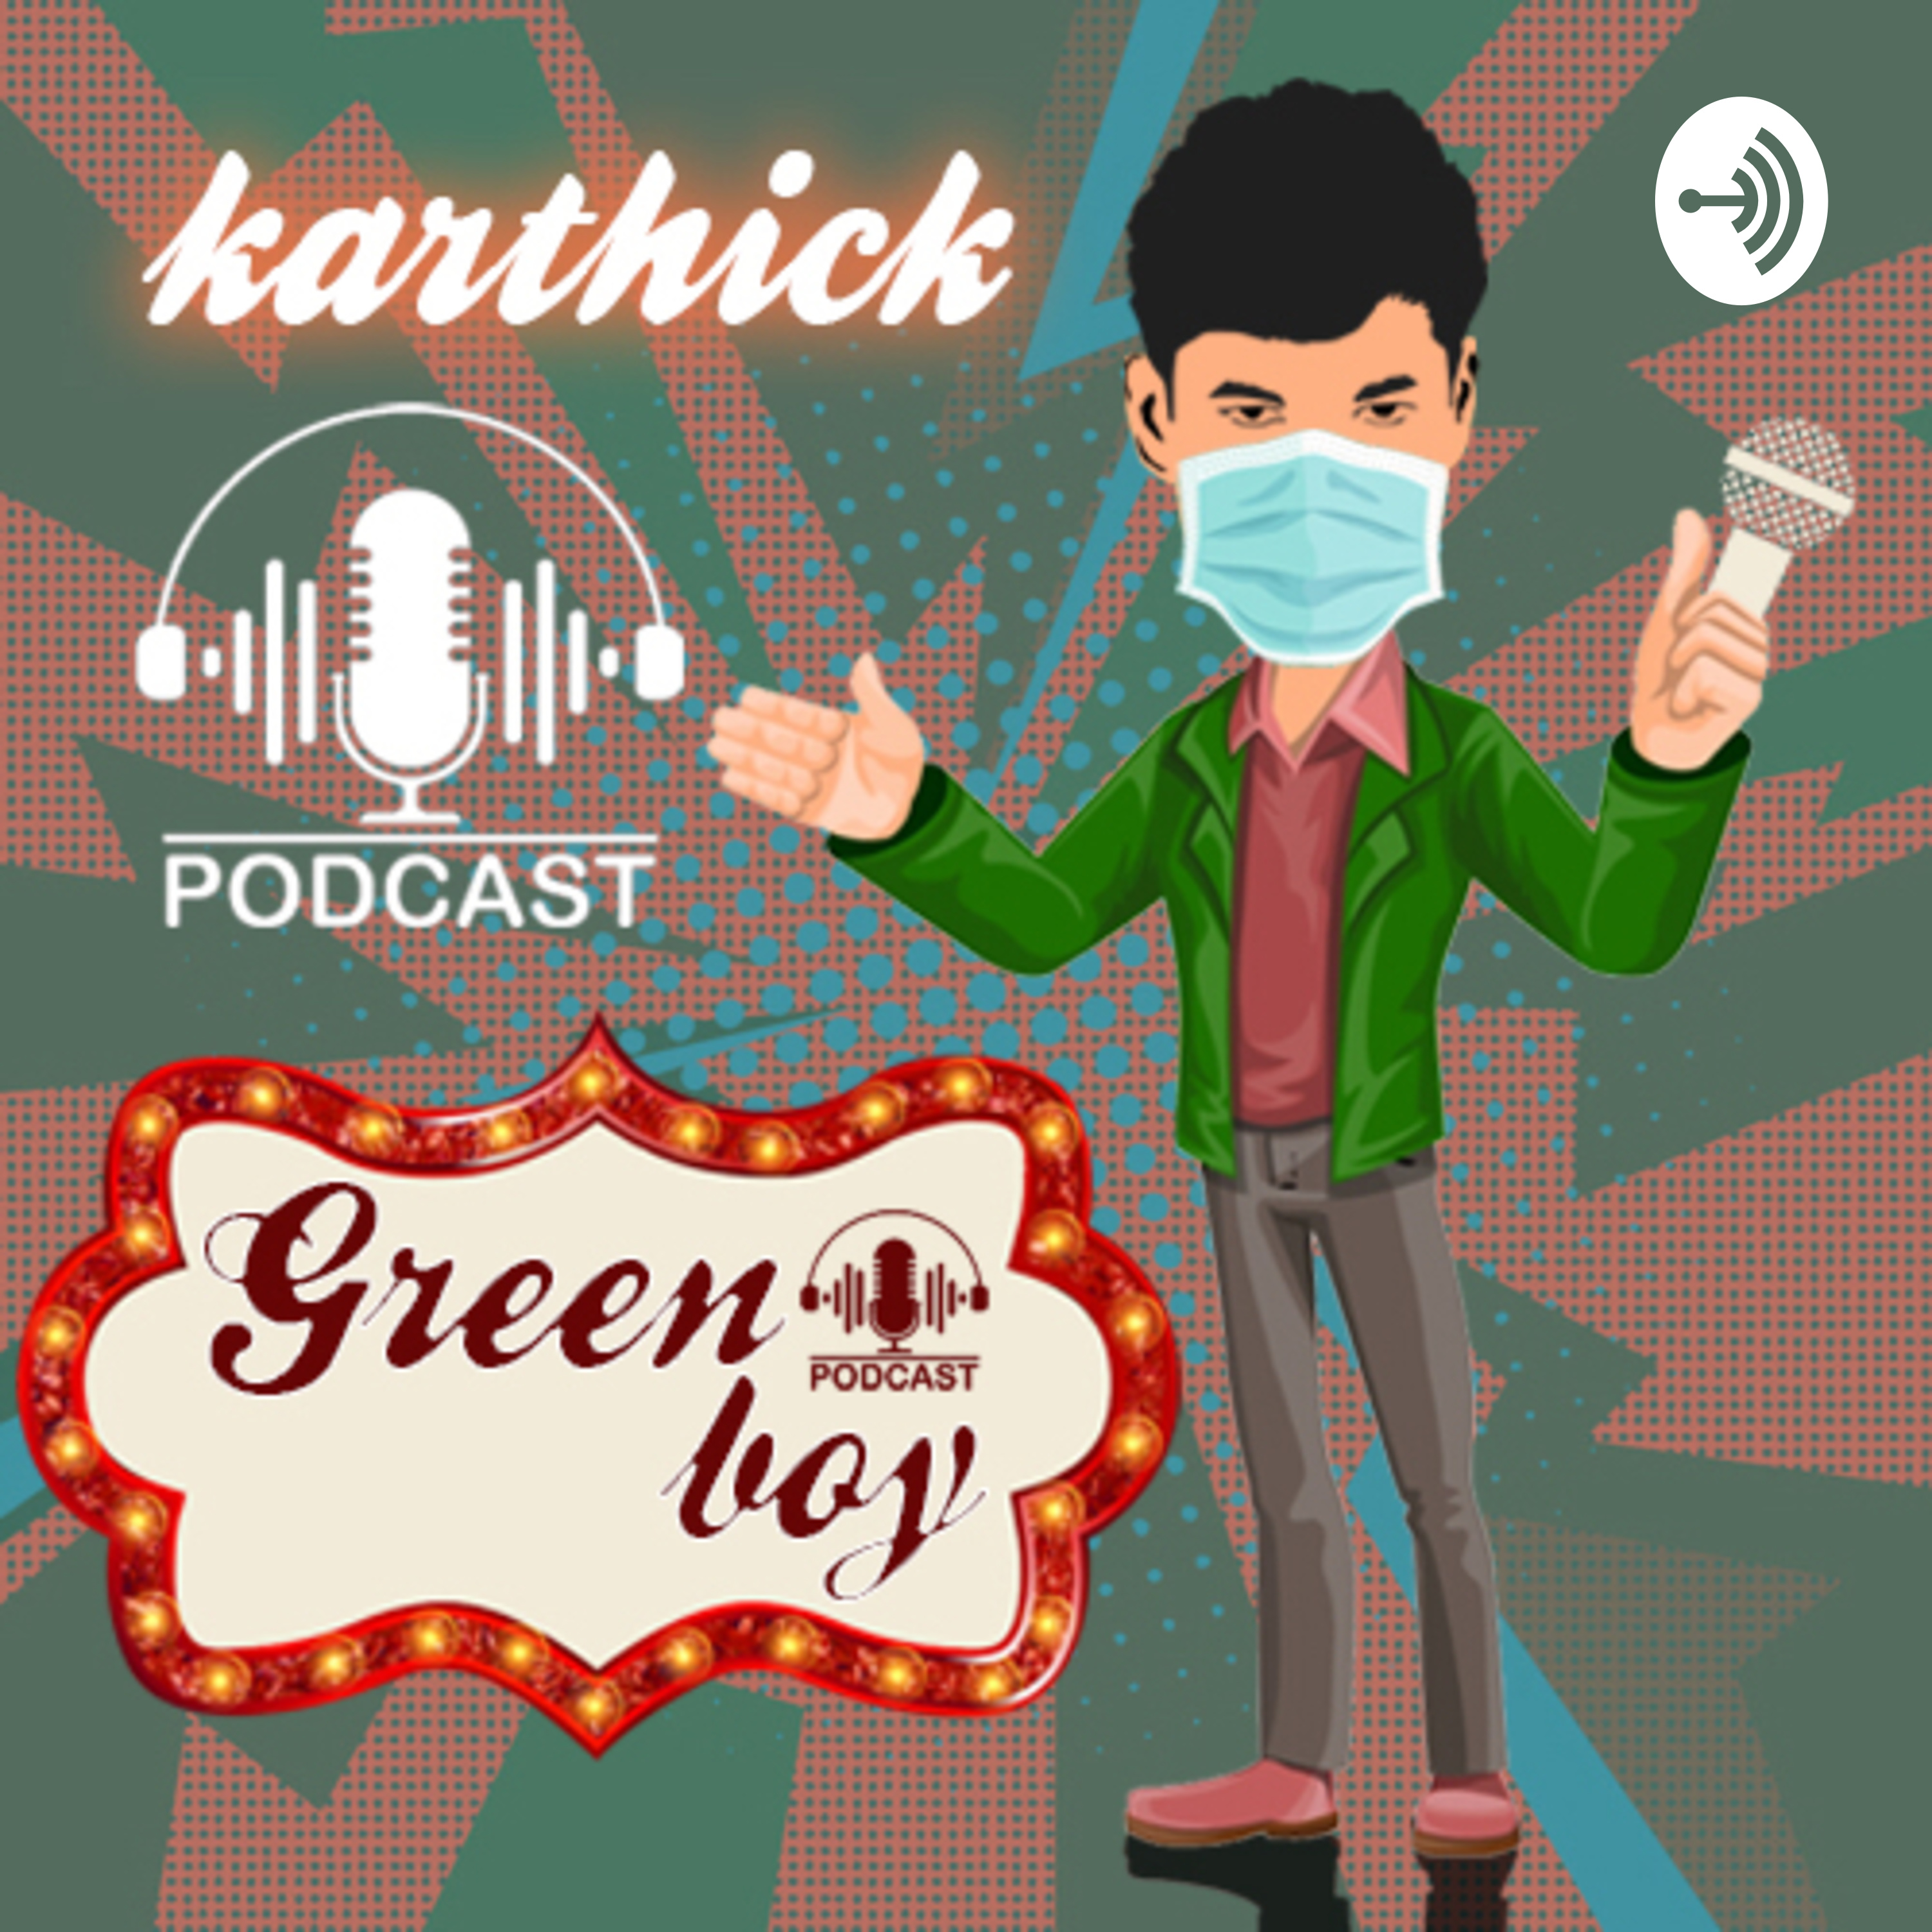 Green boy Tamil podcast